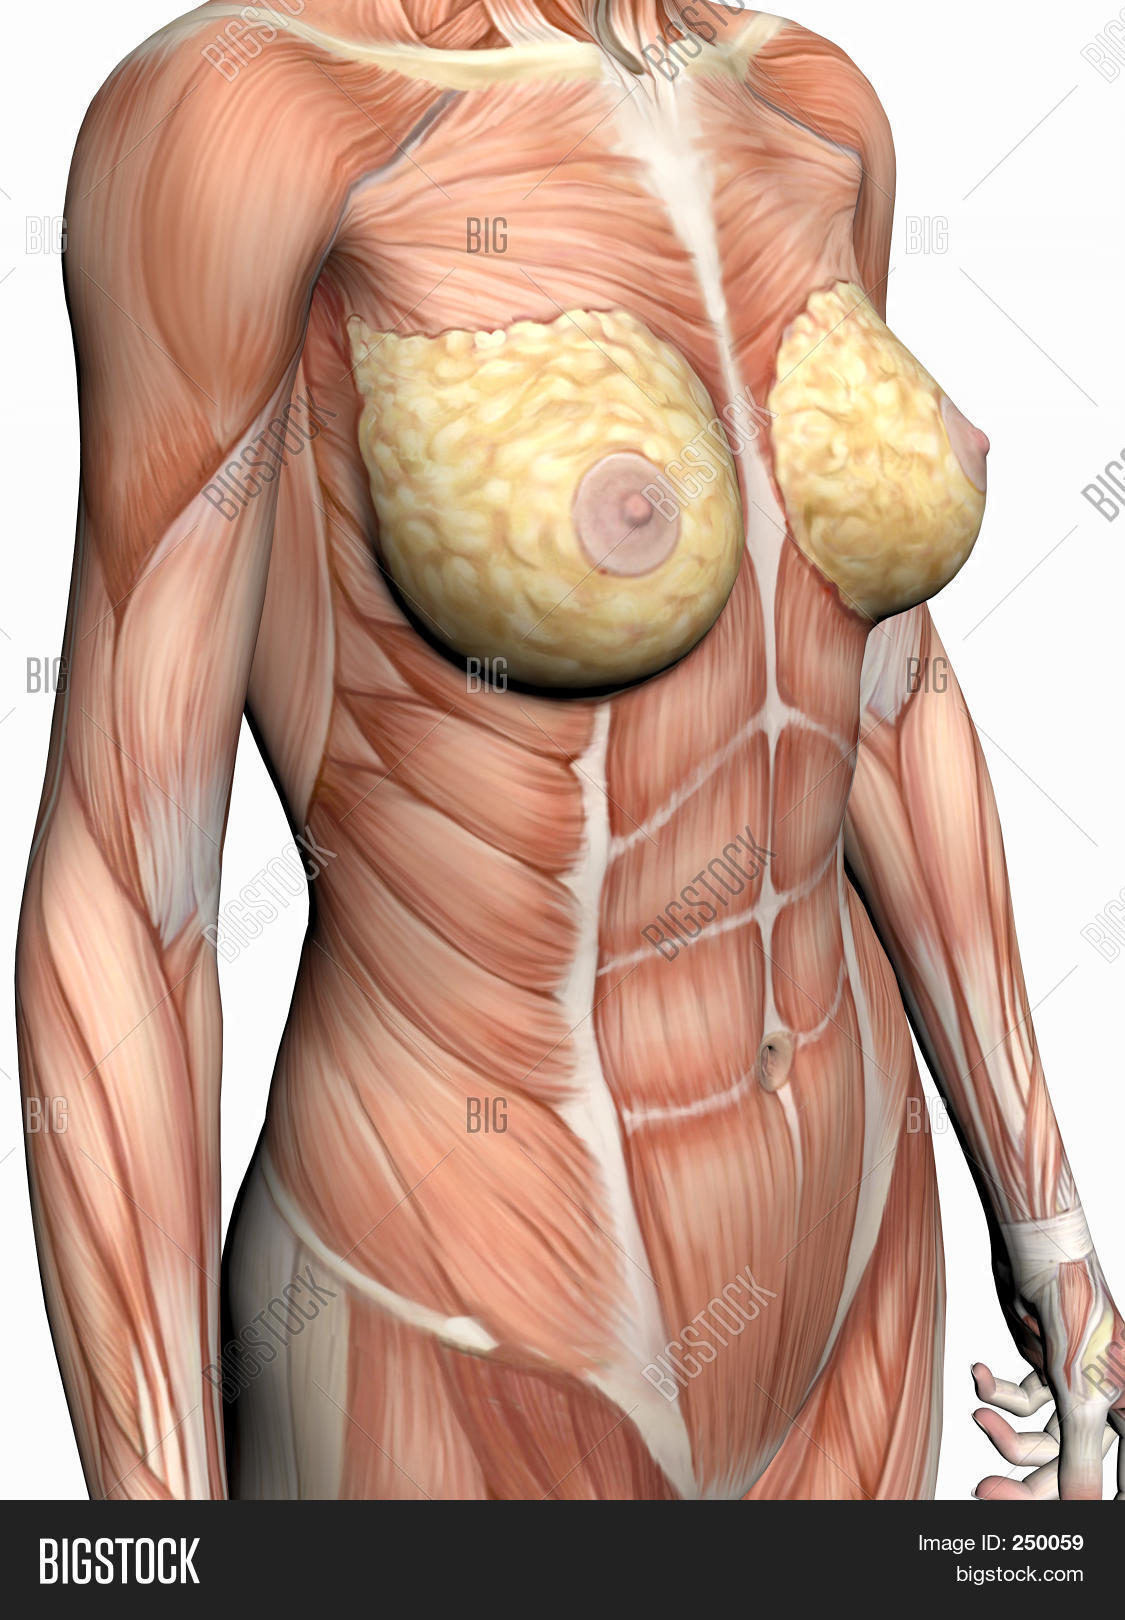 Anatomy Woman Image & Photo (Free Trial) | Bigstock